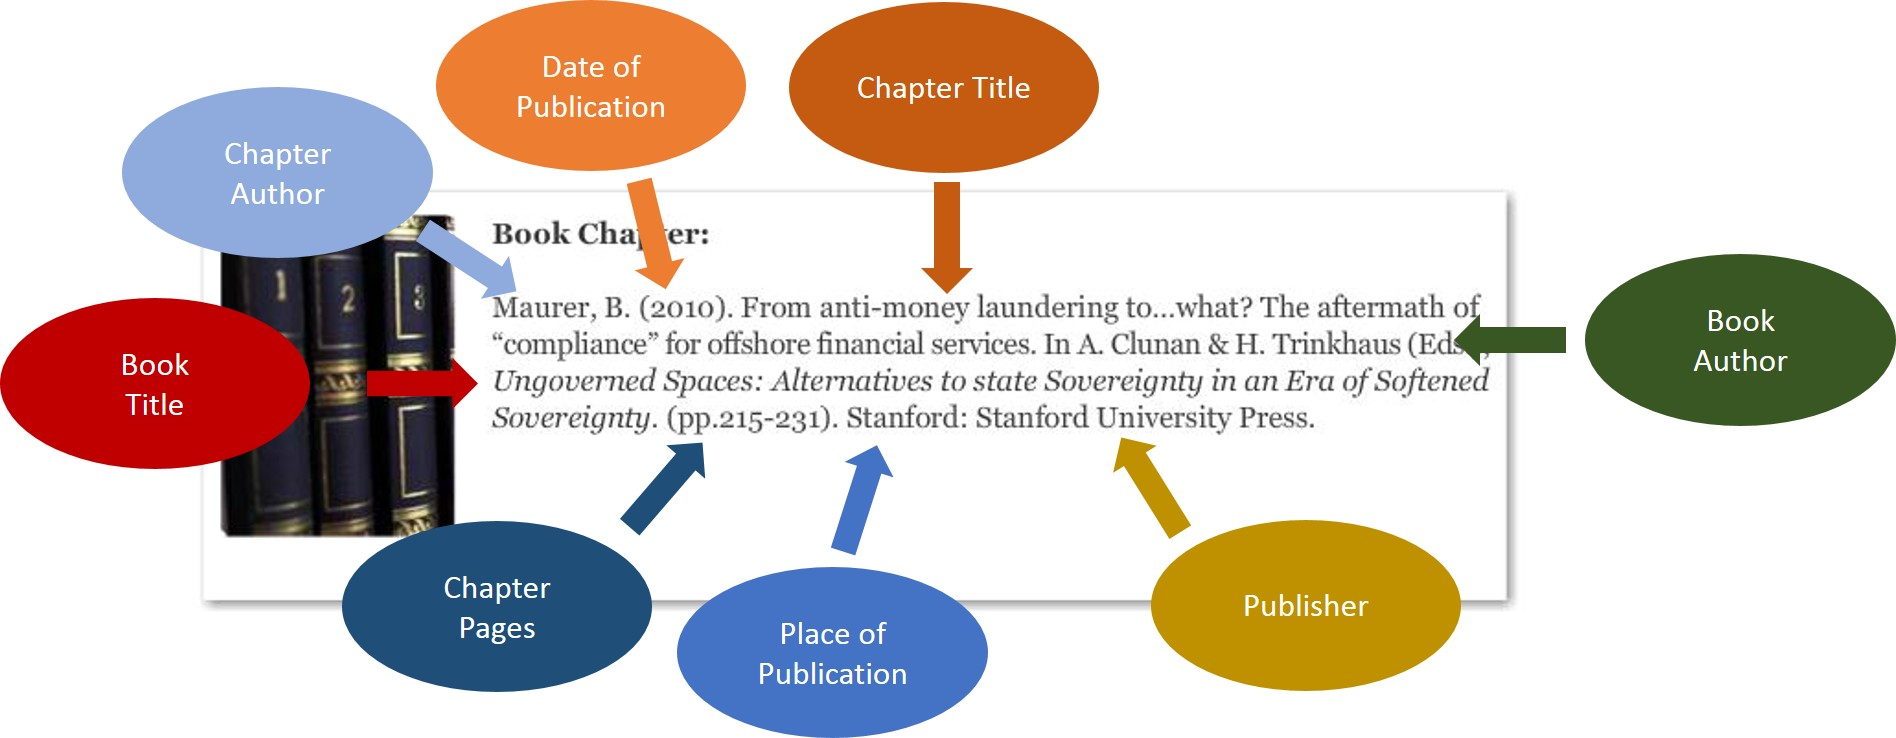 Bibliographic Information for Book Chapter: Chapter Title, Chapter Author, Book Title, Book Author, Chapter Pages, Publisher, Place of Publication, Date of Publication